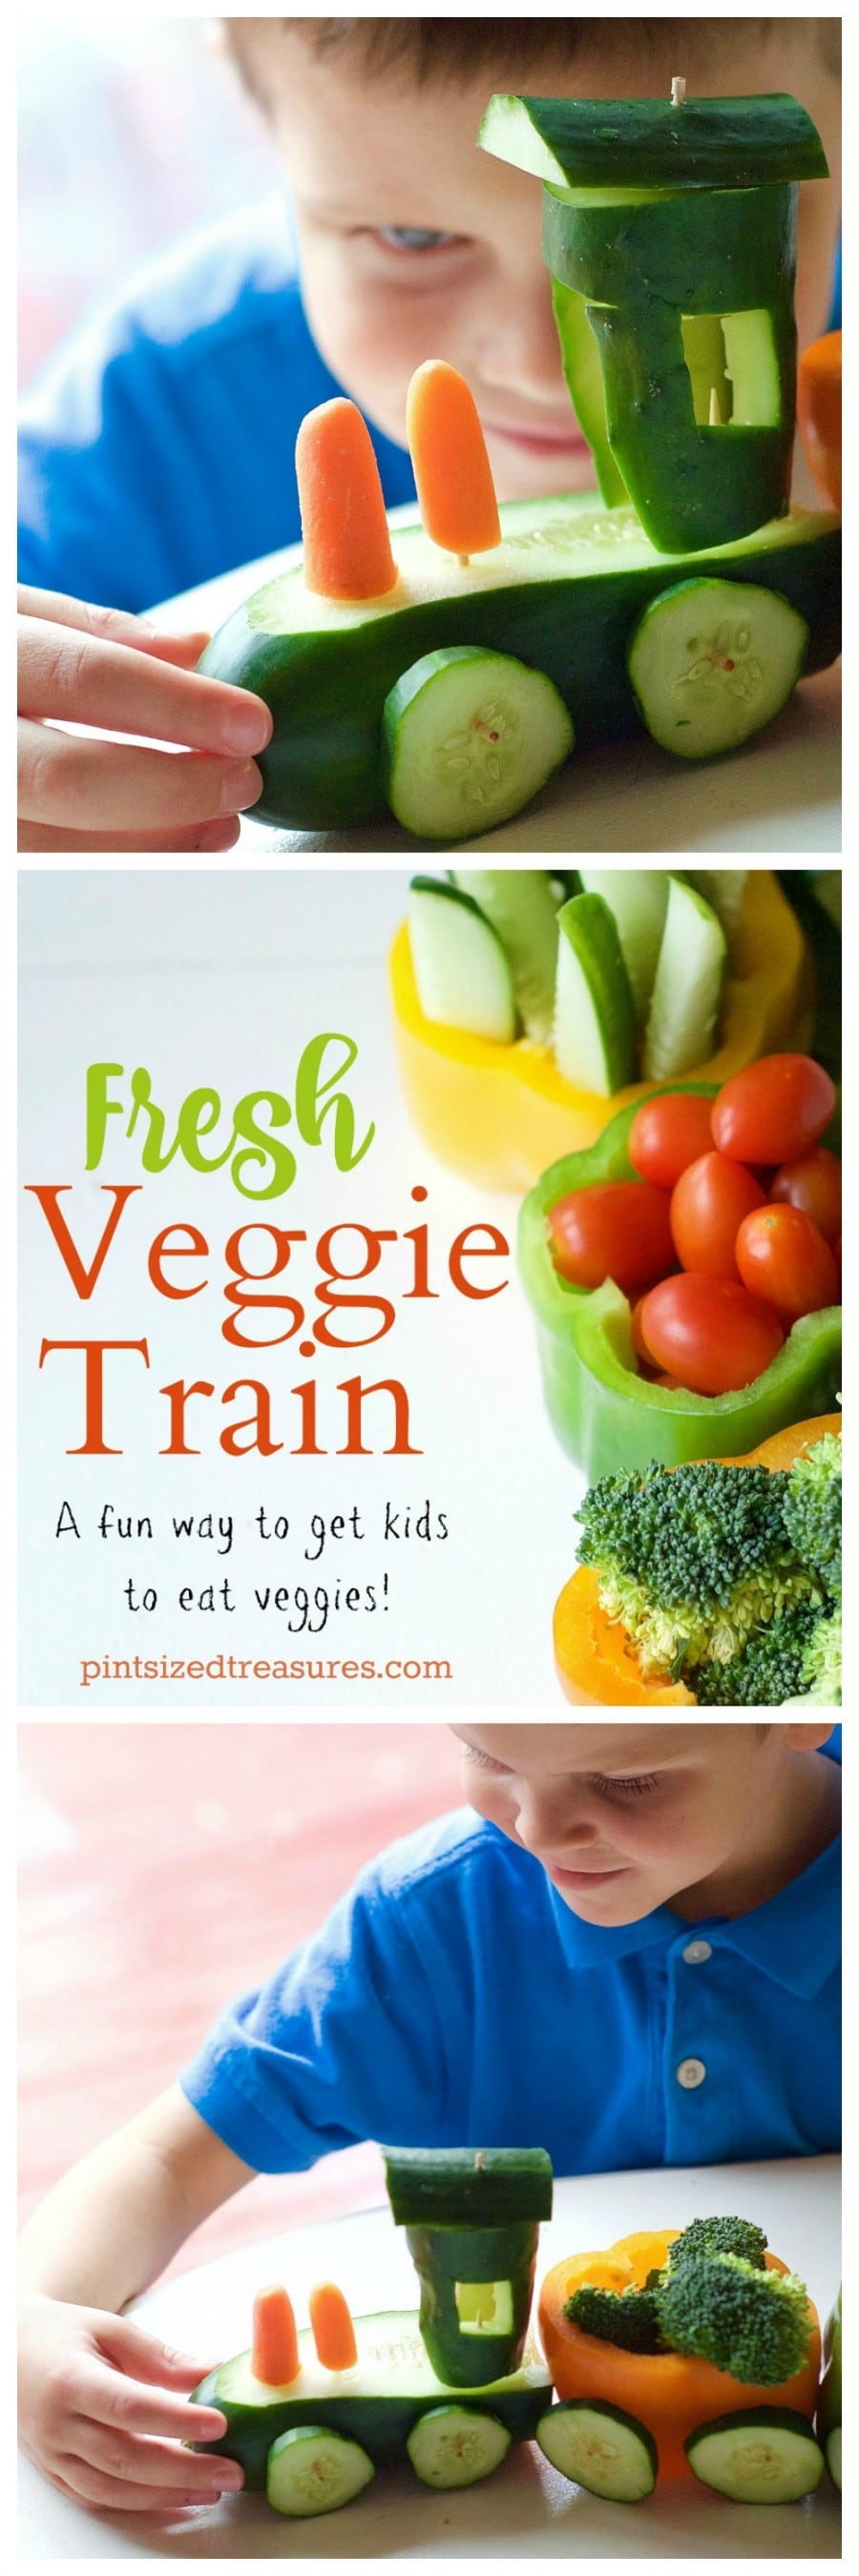 veggie train pinterest collage-1